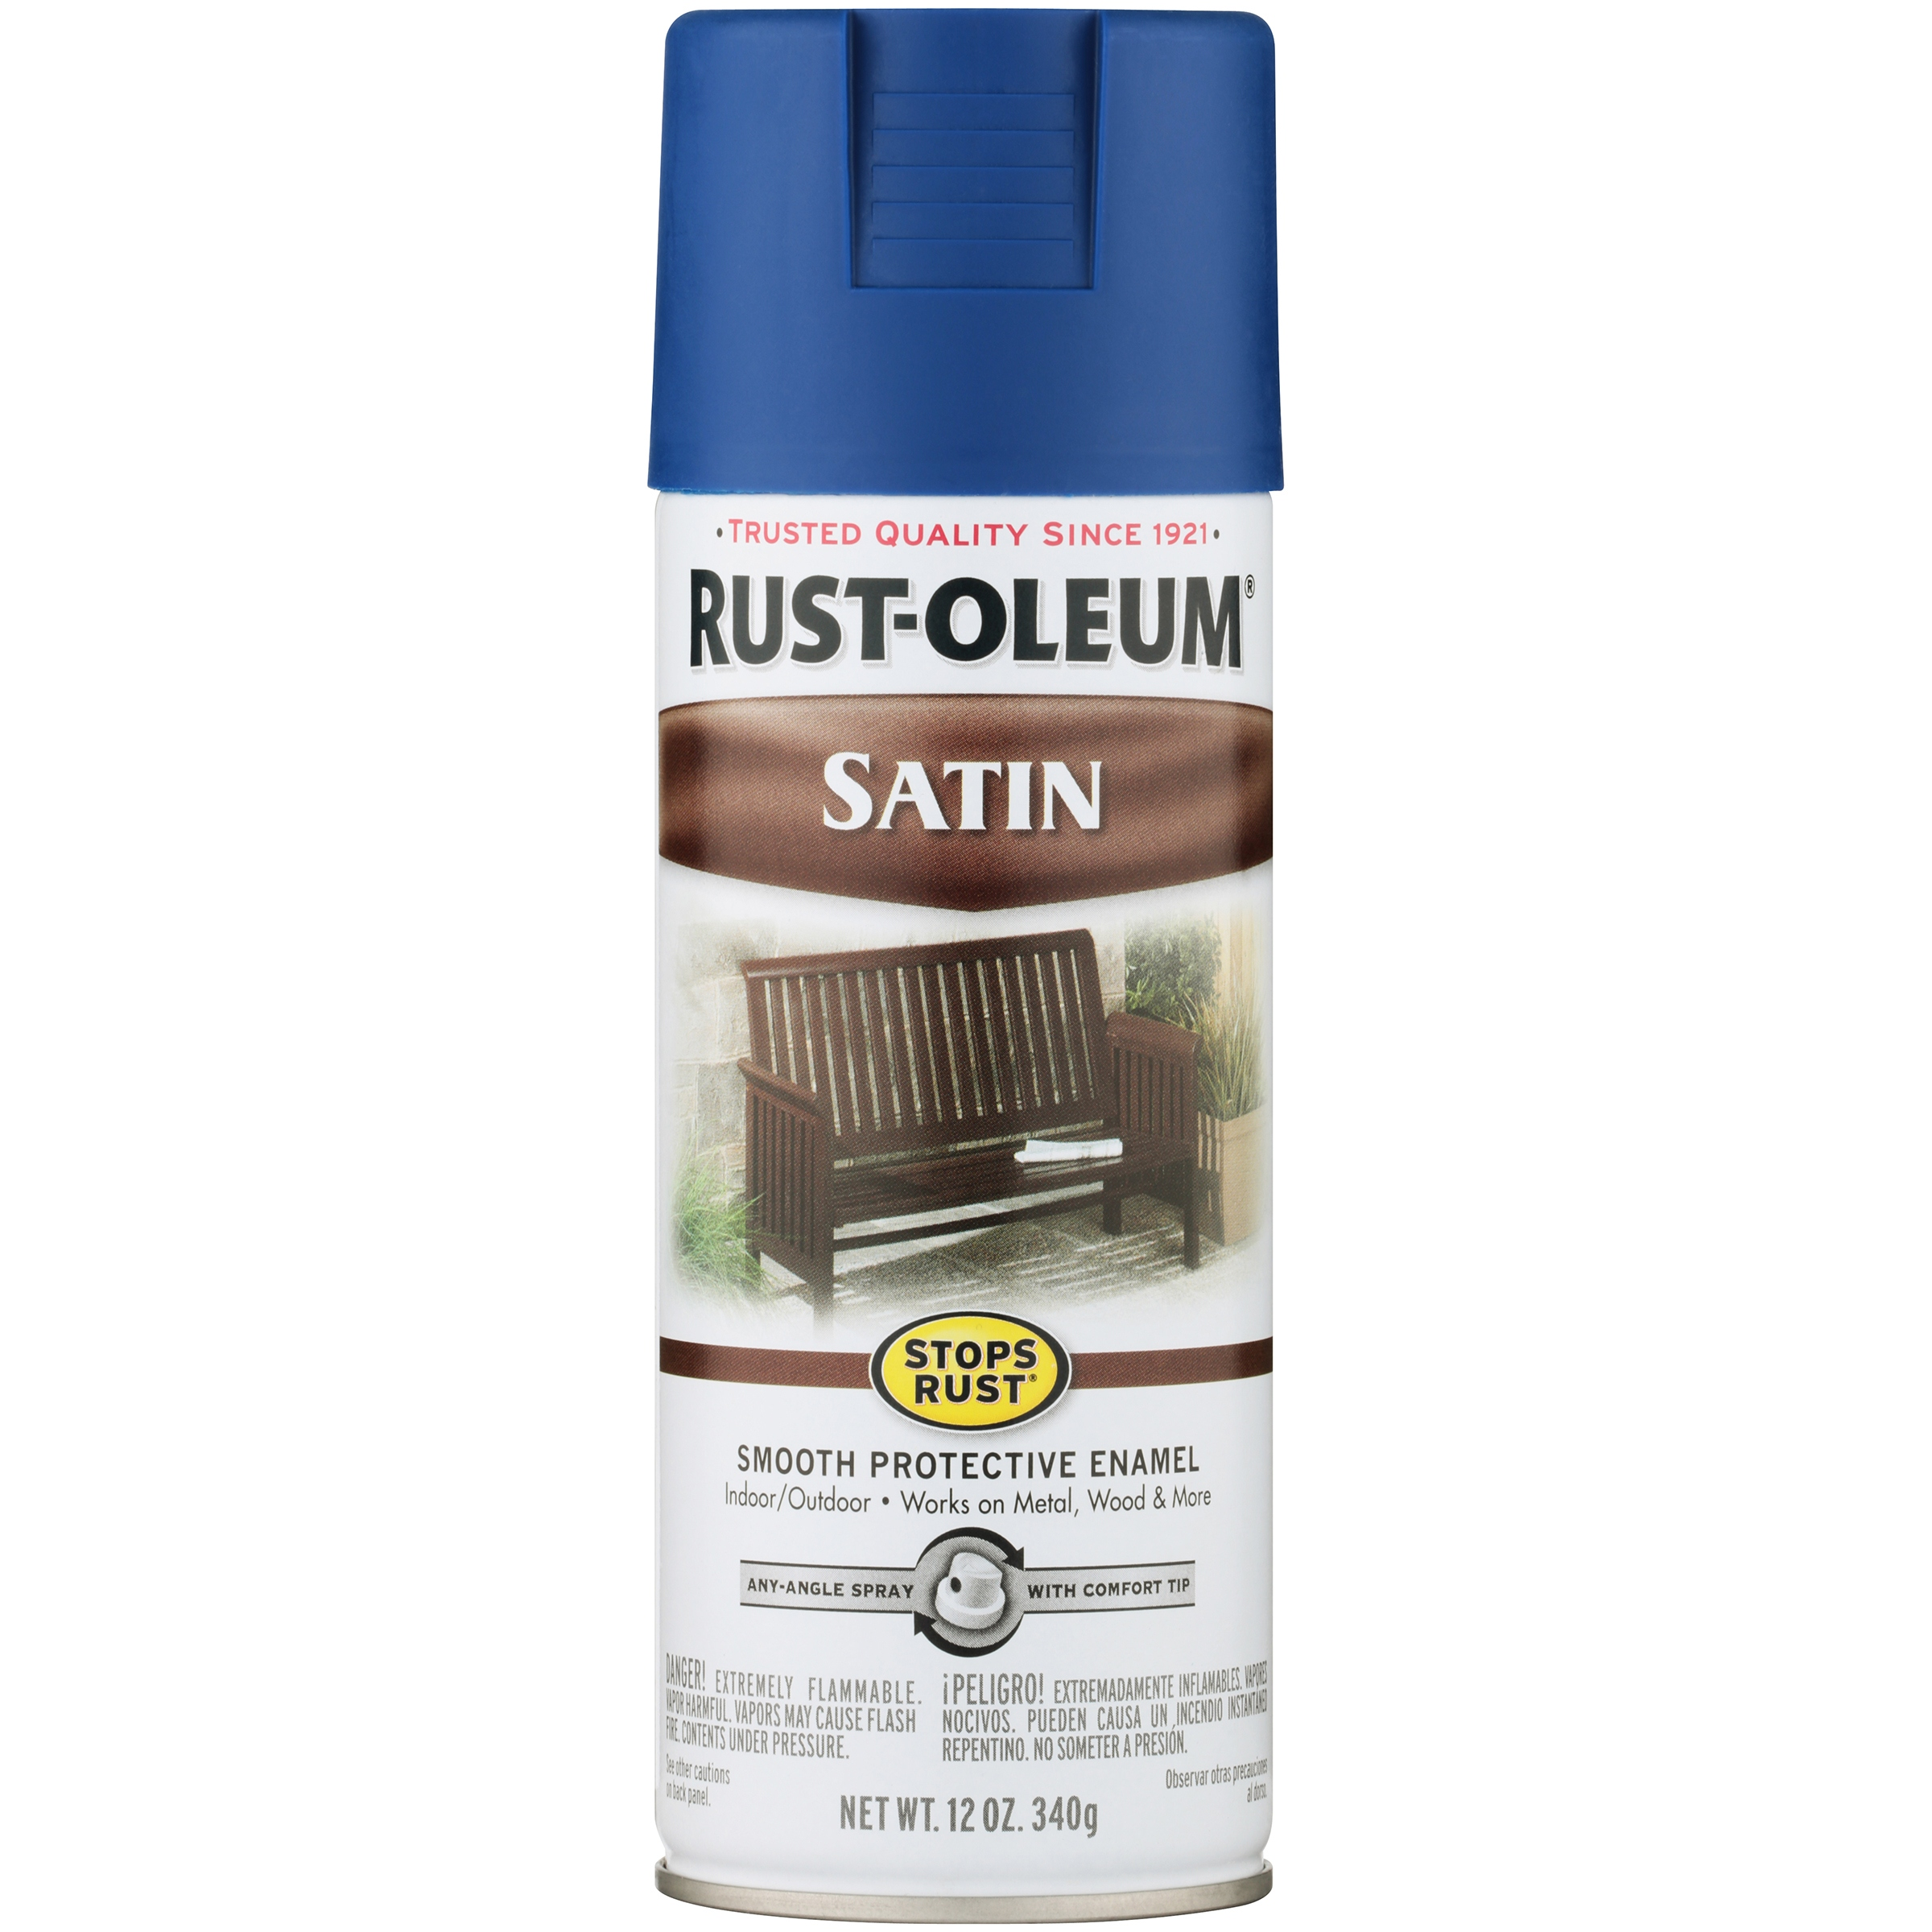 Rust-Oleum Stops Rust Satin Sapphire Spray Paint, 12 oz